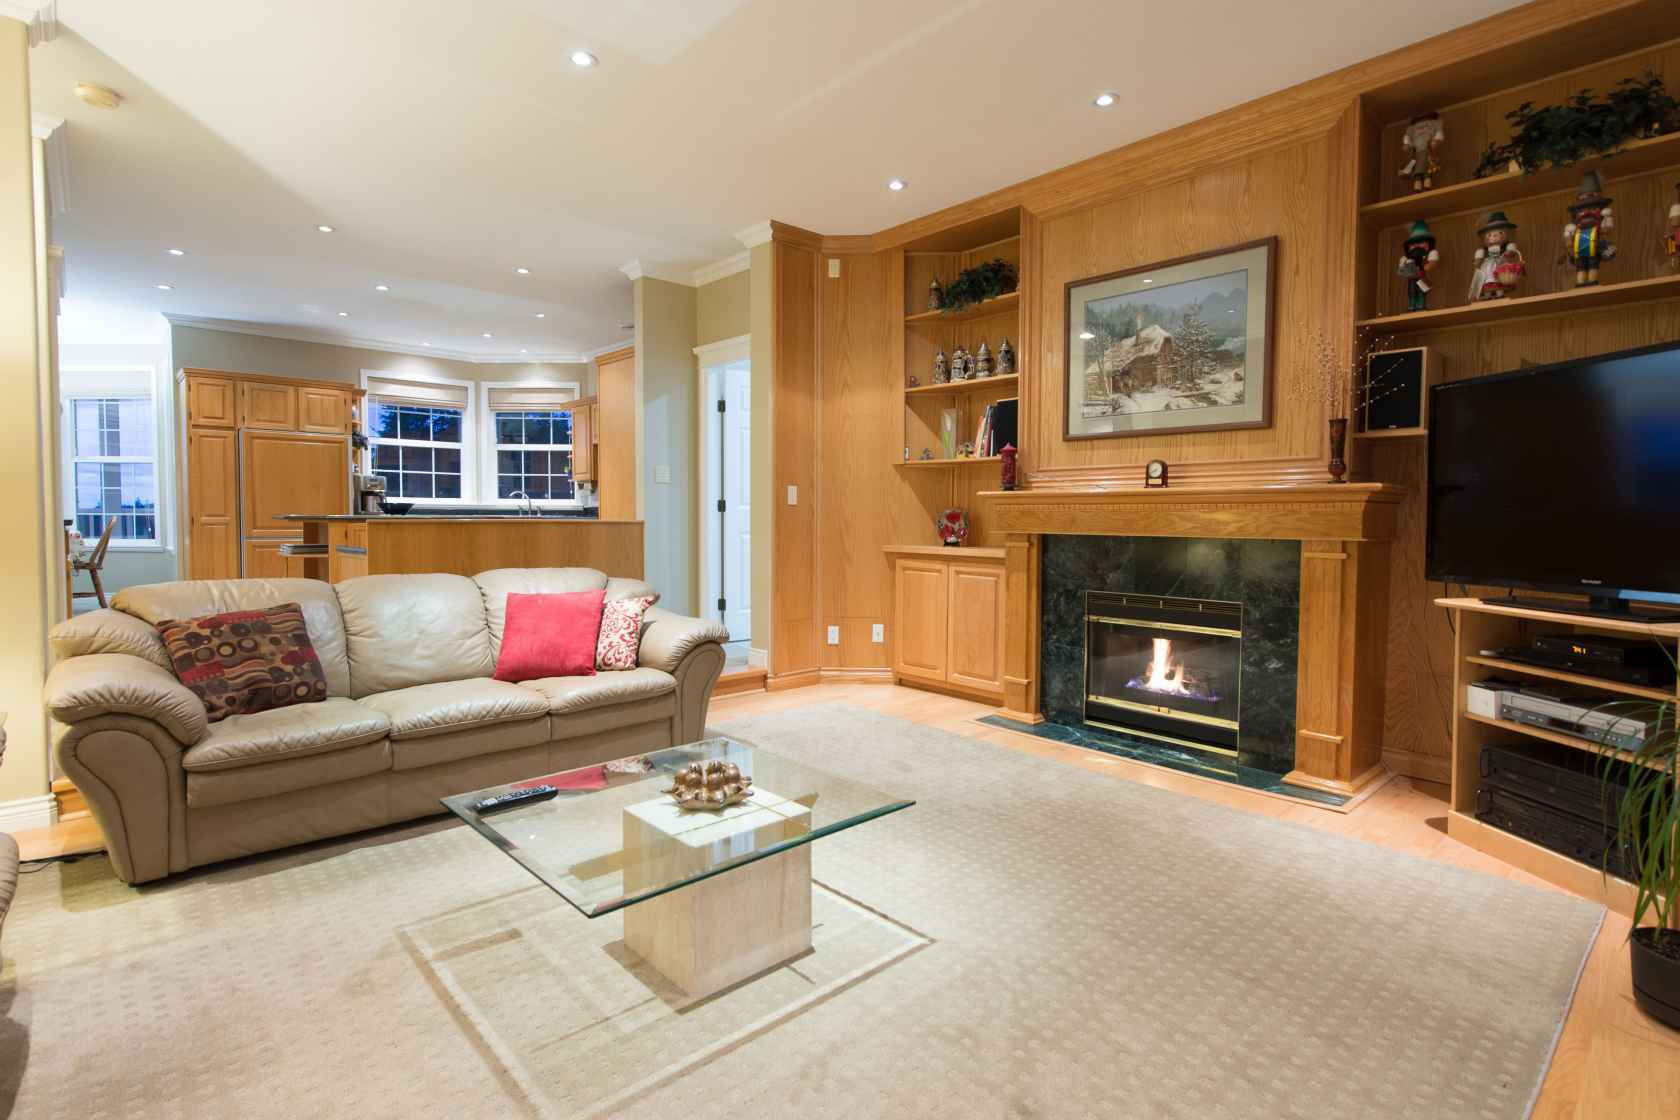 010 at 127 Hemlock Drive, Vancouver West